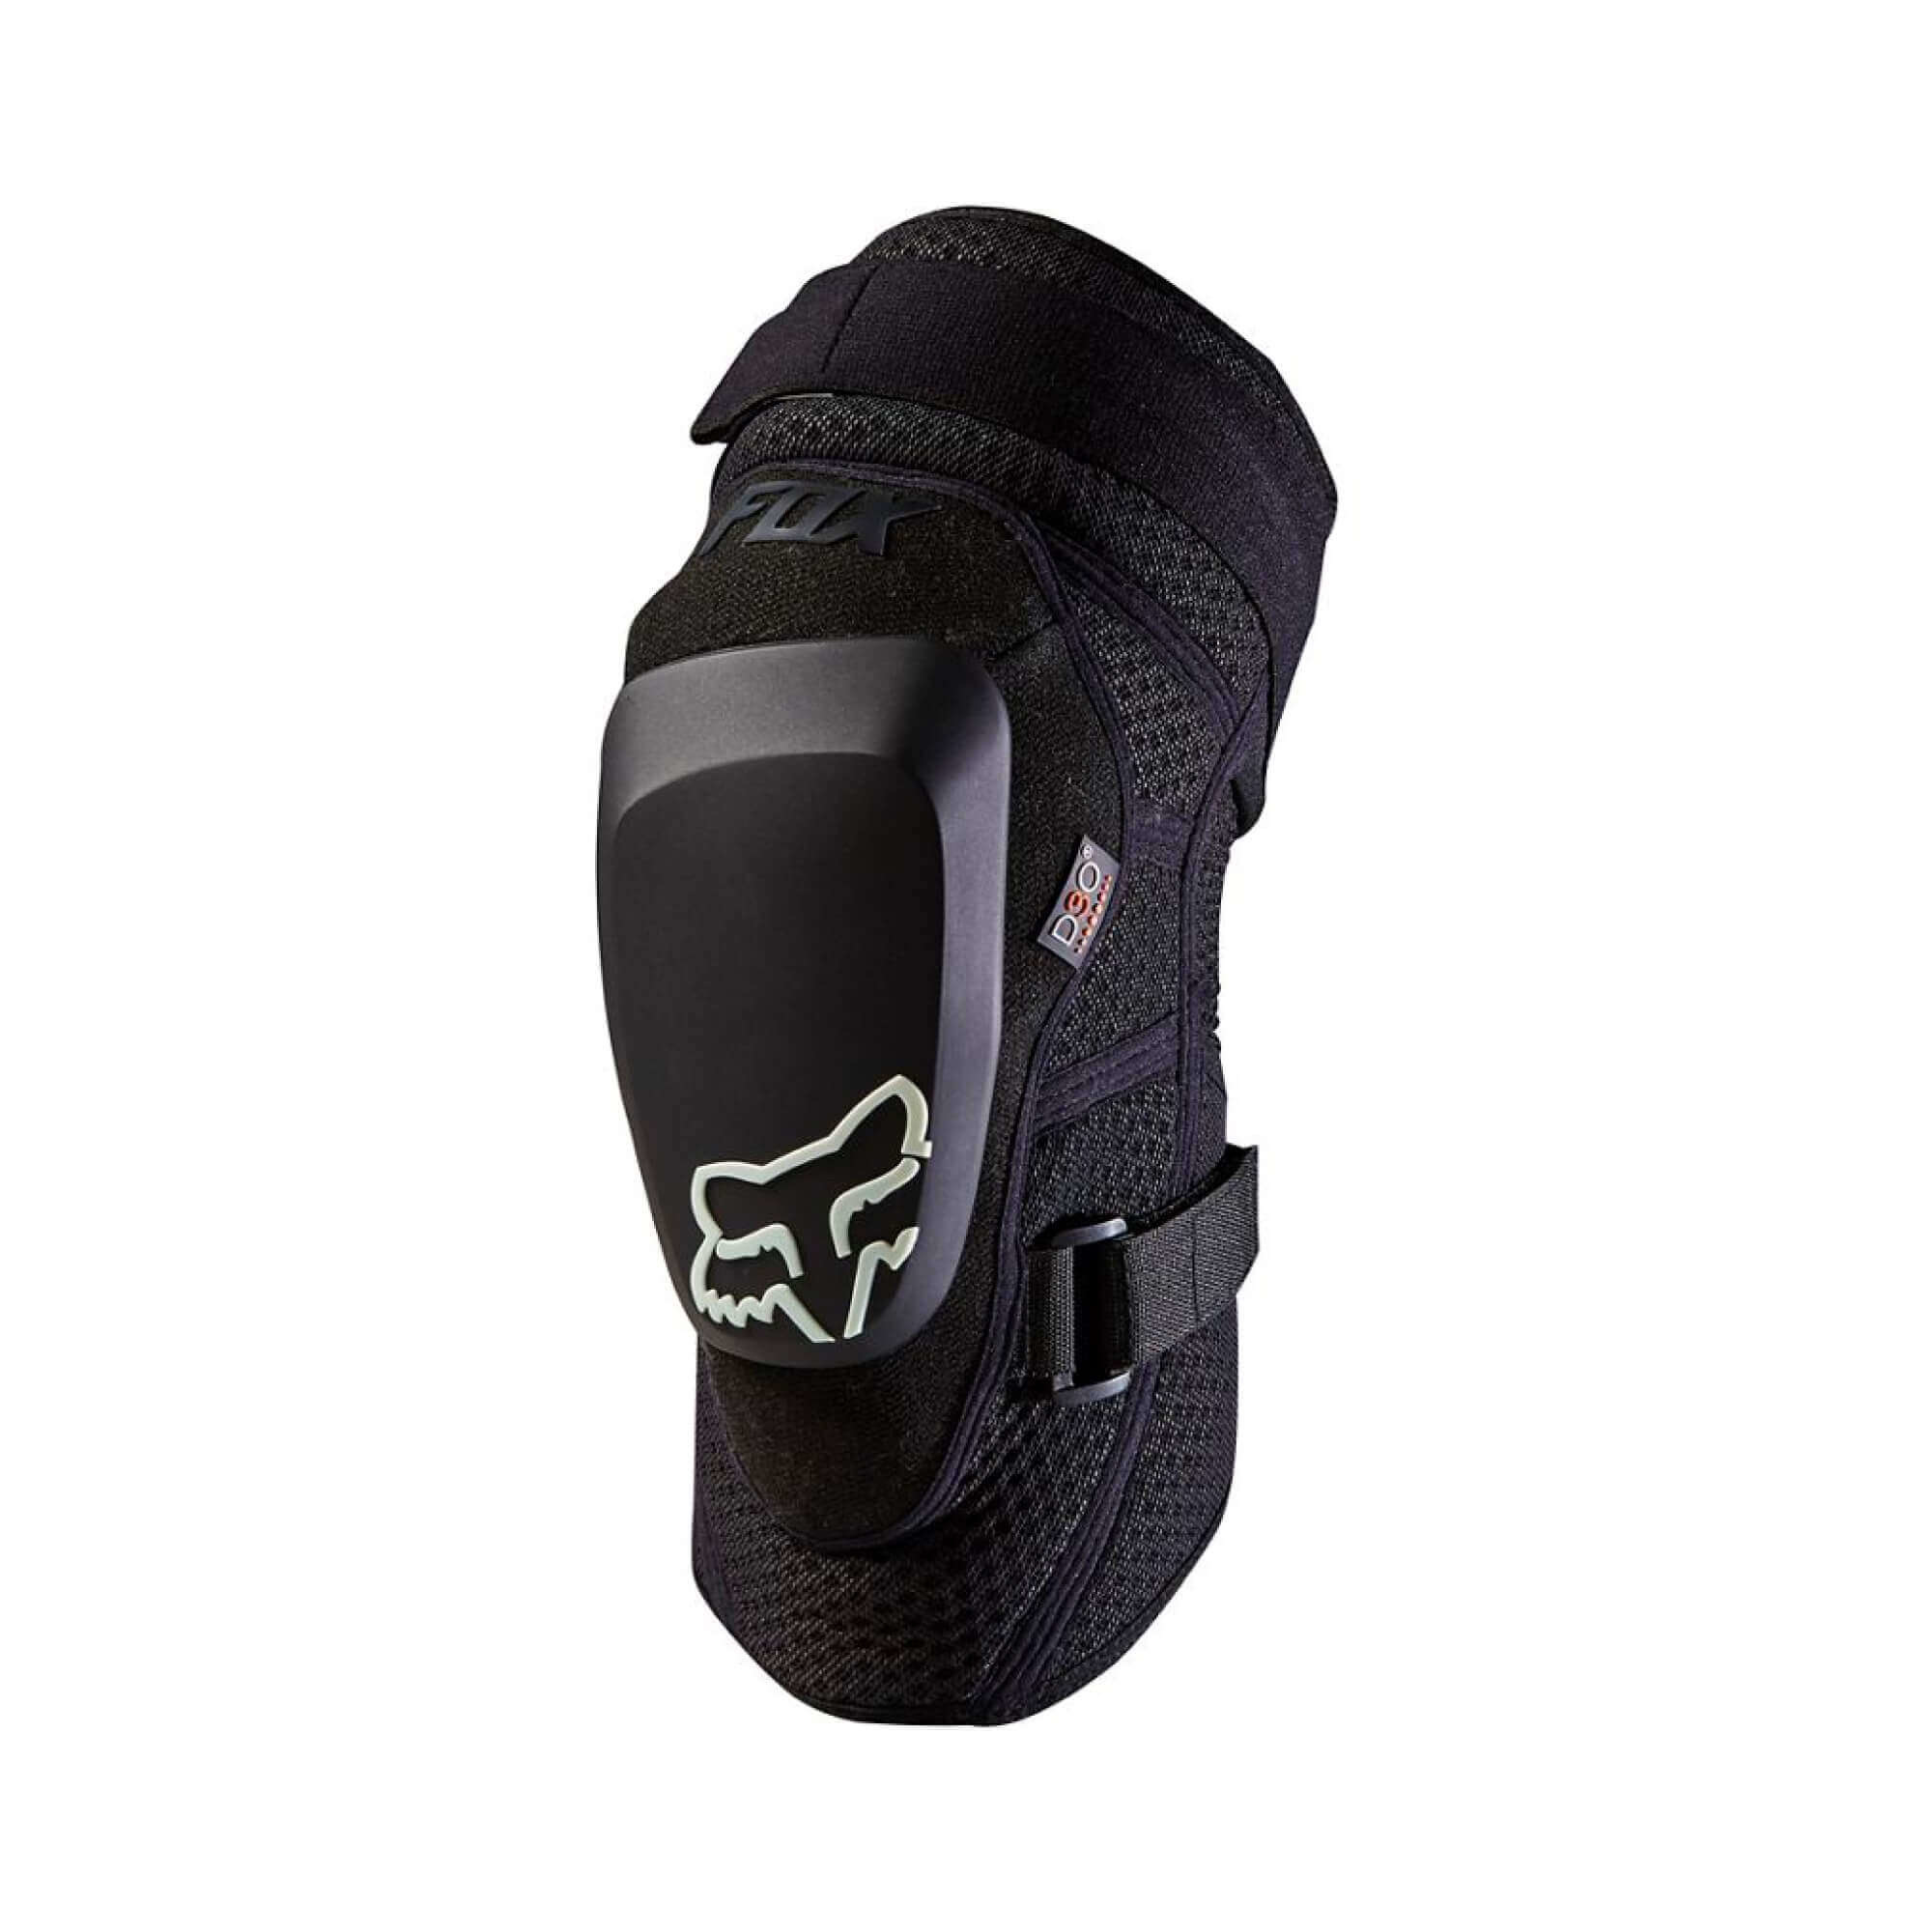 Launch Pro D3O Knee Guard Black-1